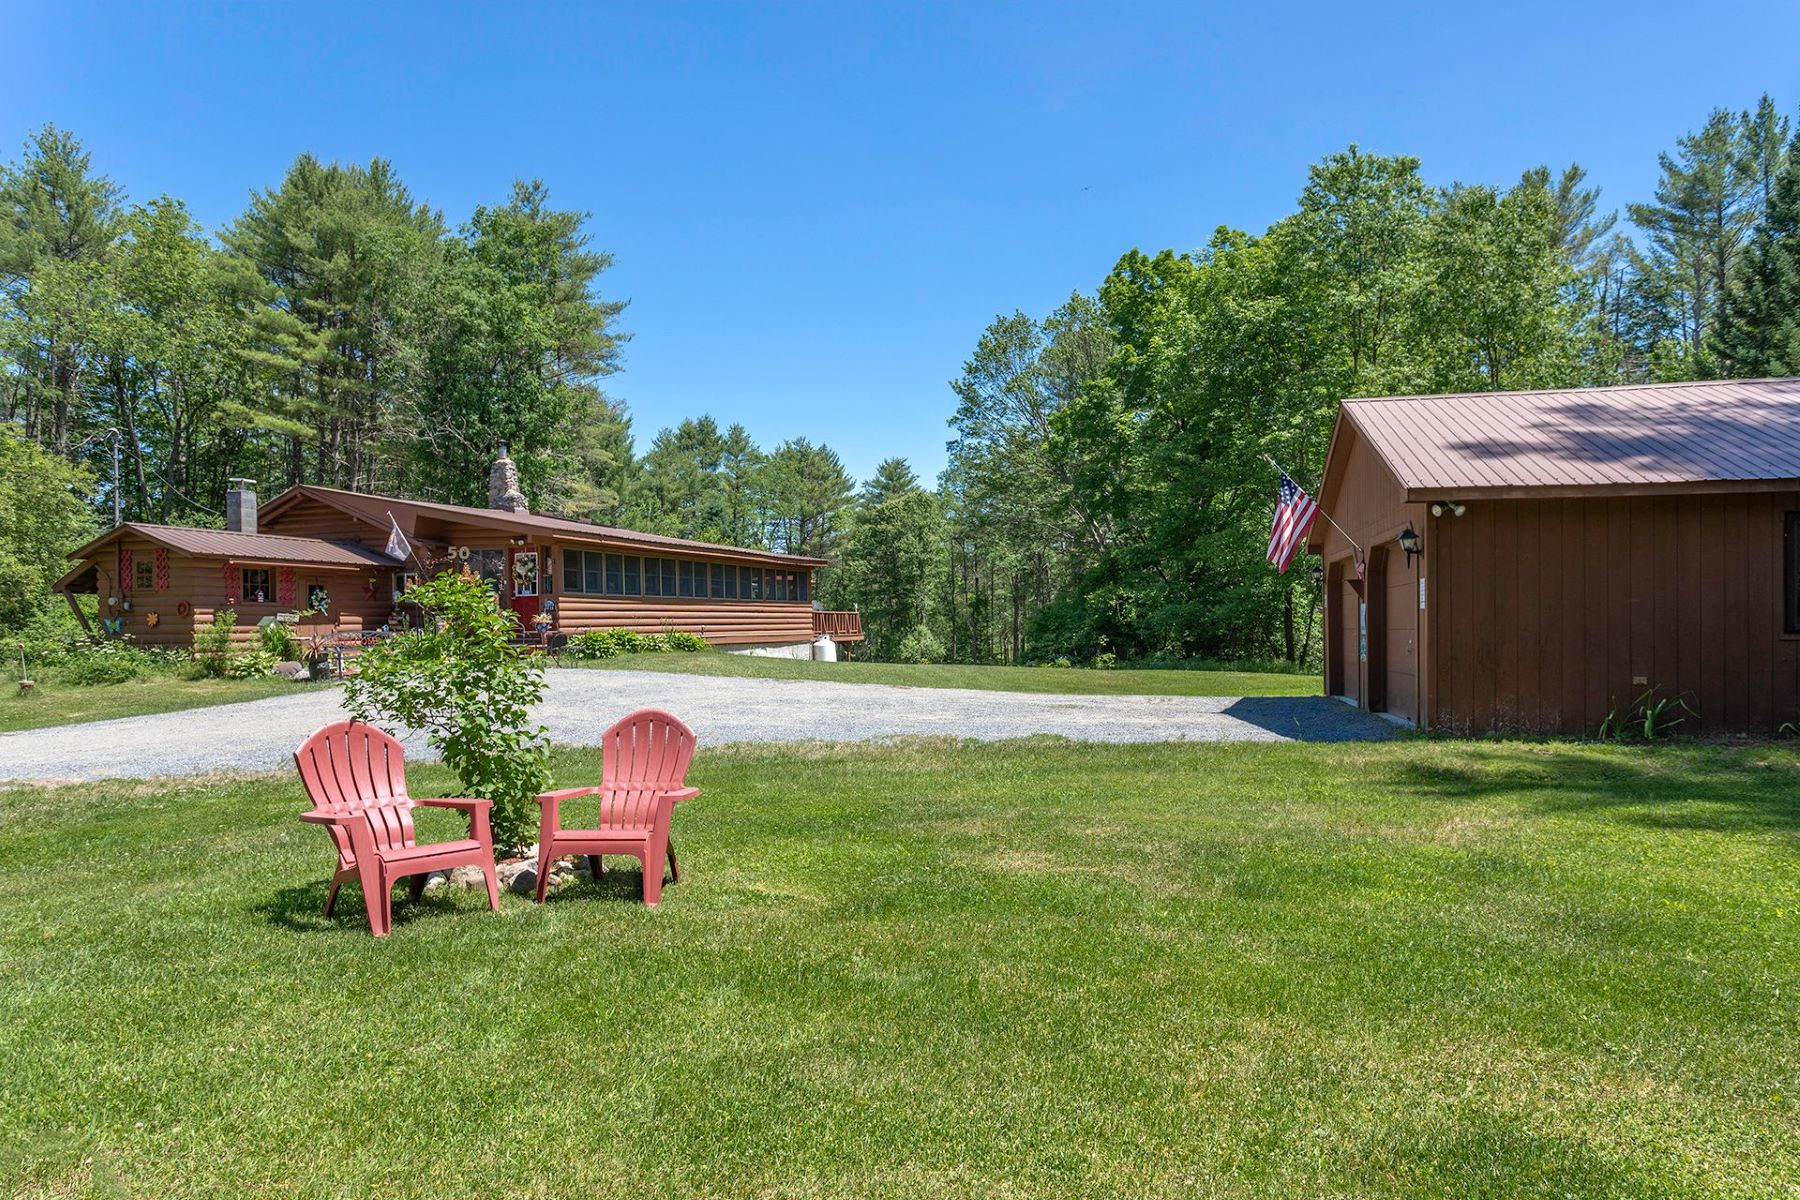 Property for Sale at Adirondack Log Home Getaway 1418 Friends Lake Road Chestertown, New York 12817 United States